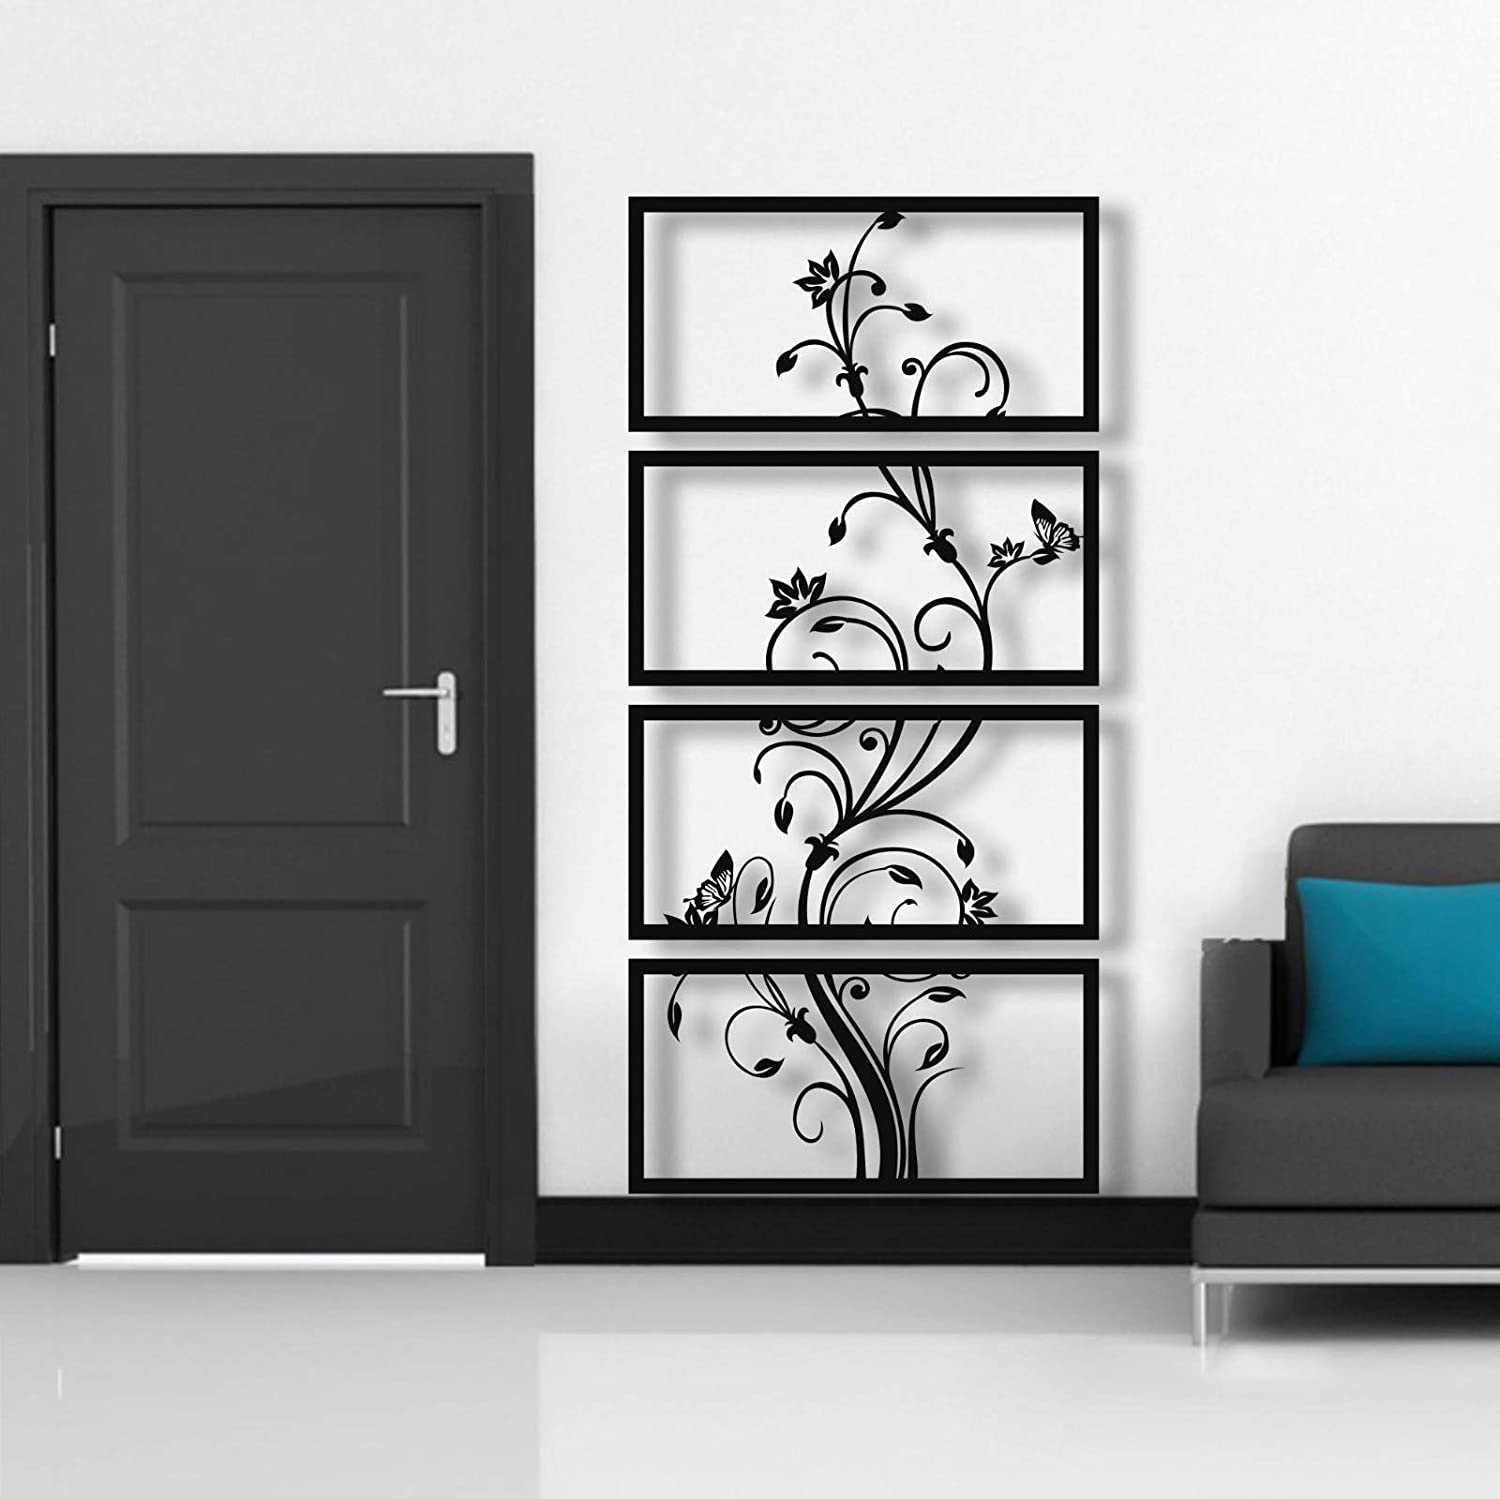 Metal Wall Art, 4 Panels Metal Wall Decor, Metal Flower Art, Interior Decoration, Housewarming Gift, 4 Pieces, Plant Tree Art, (30